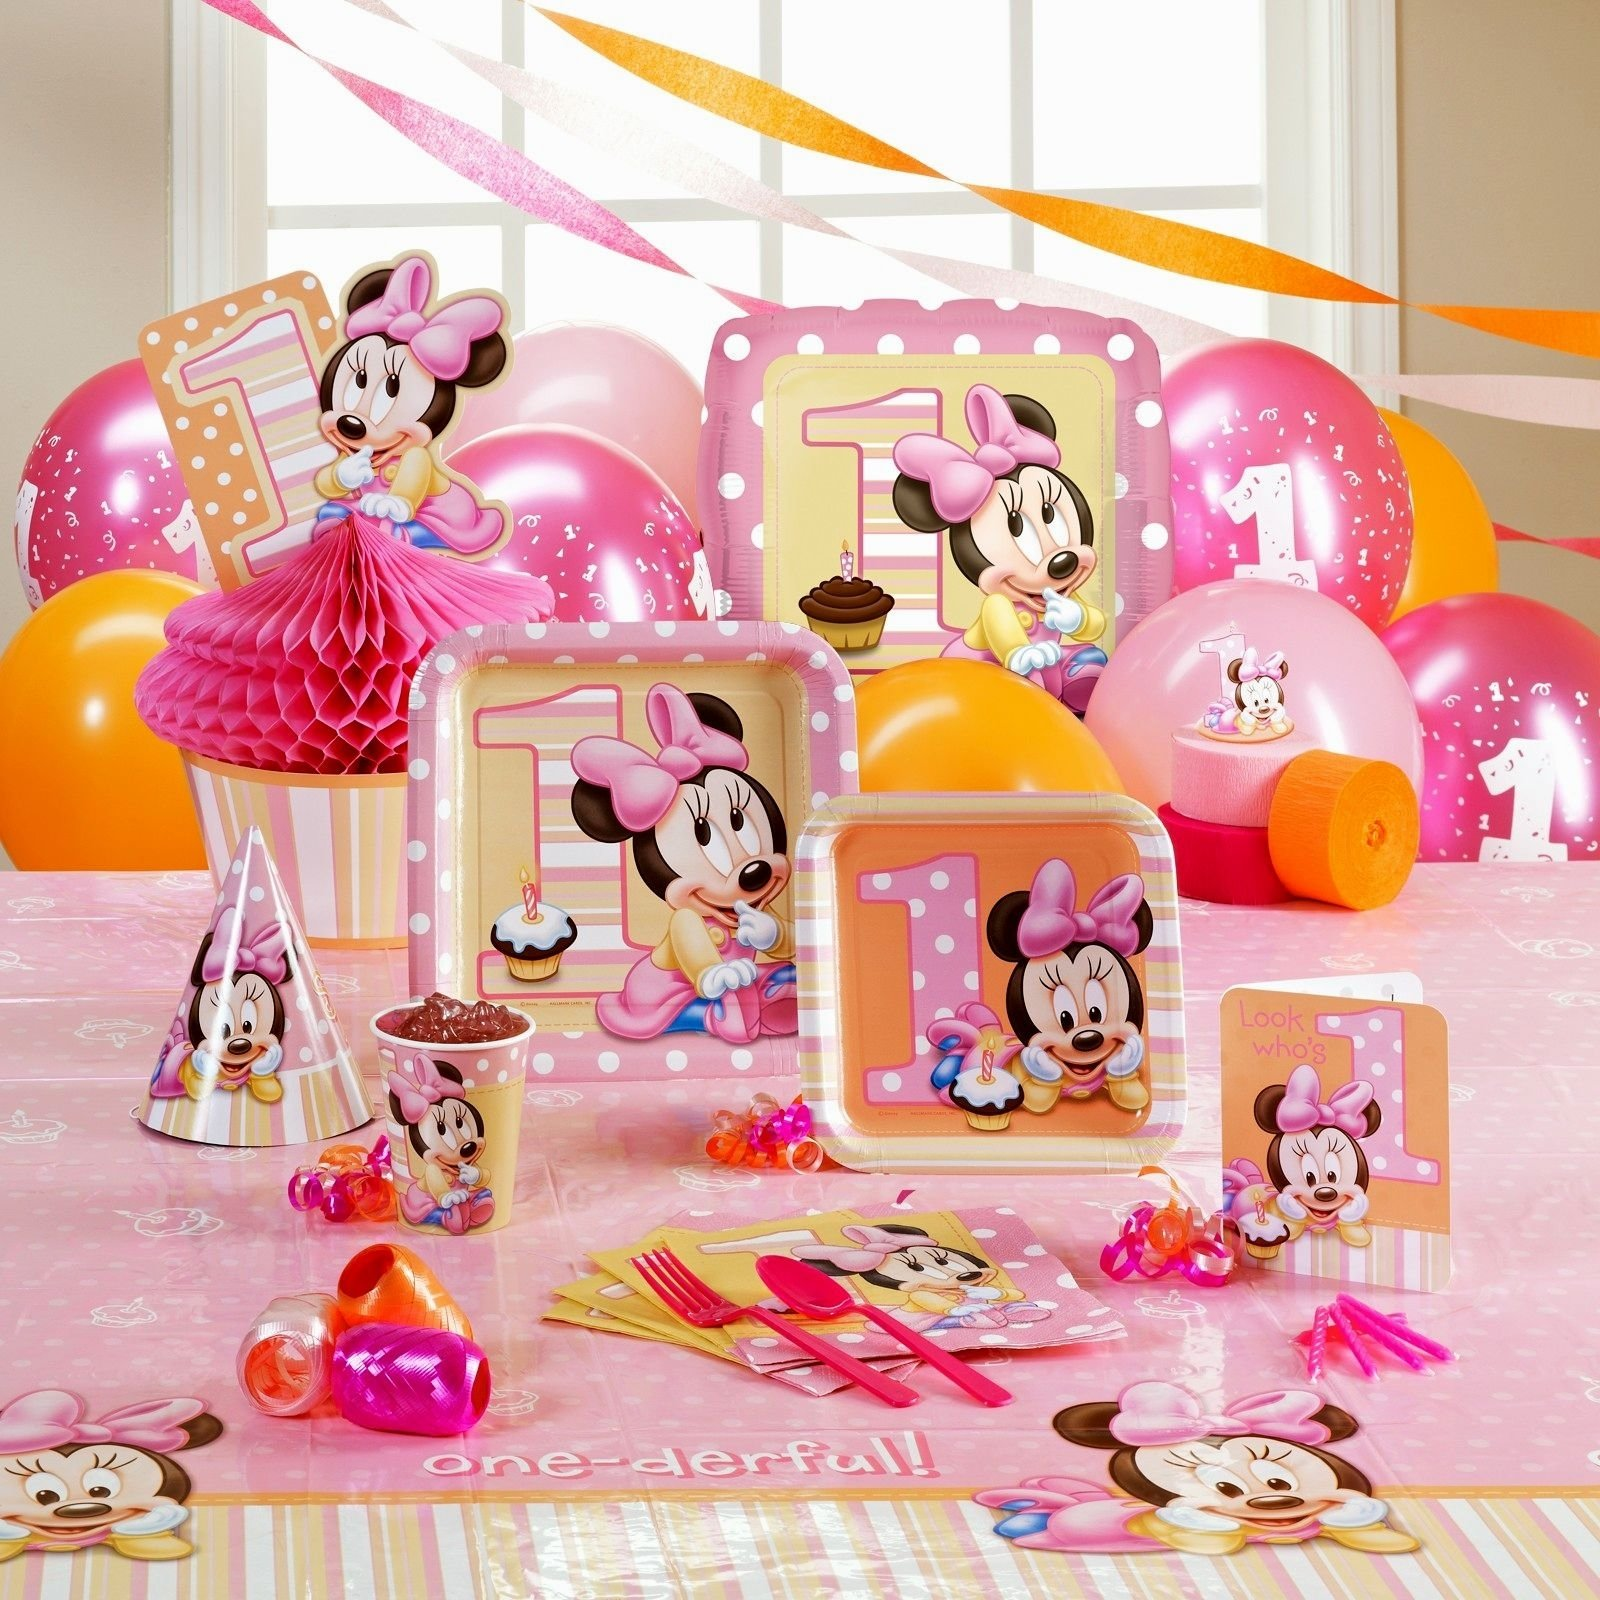 10 Lovely Baby 1St Birthday Party Ideas baby girl first birthday party ideas blog archives decorating of party